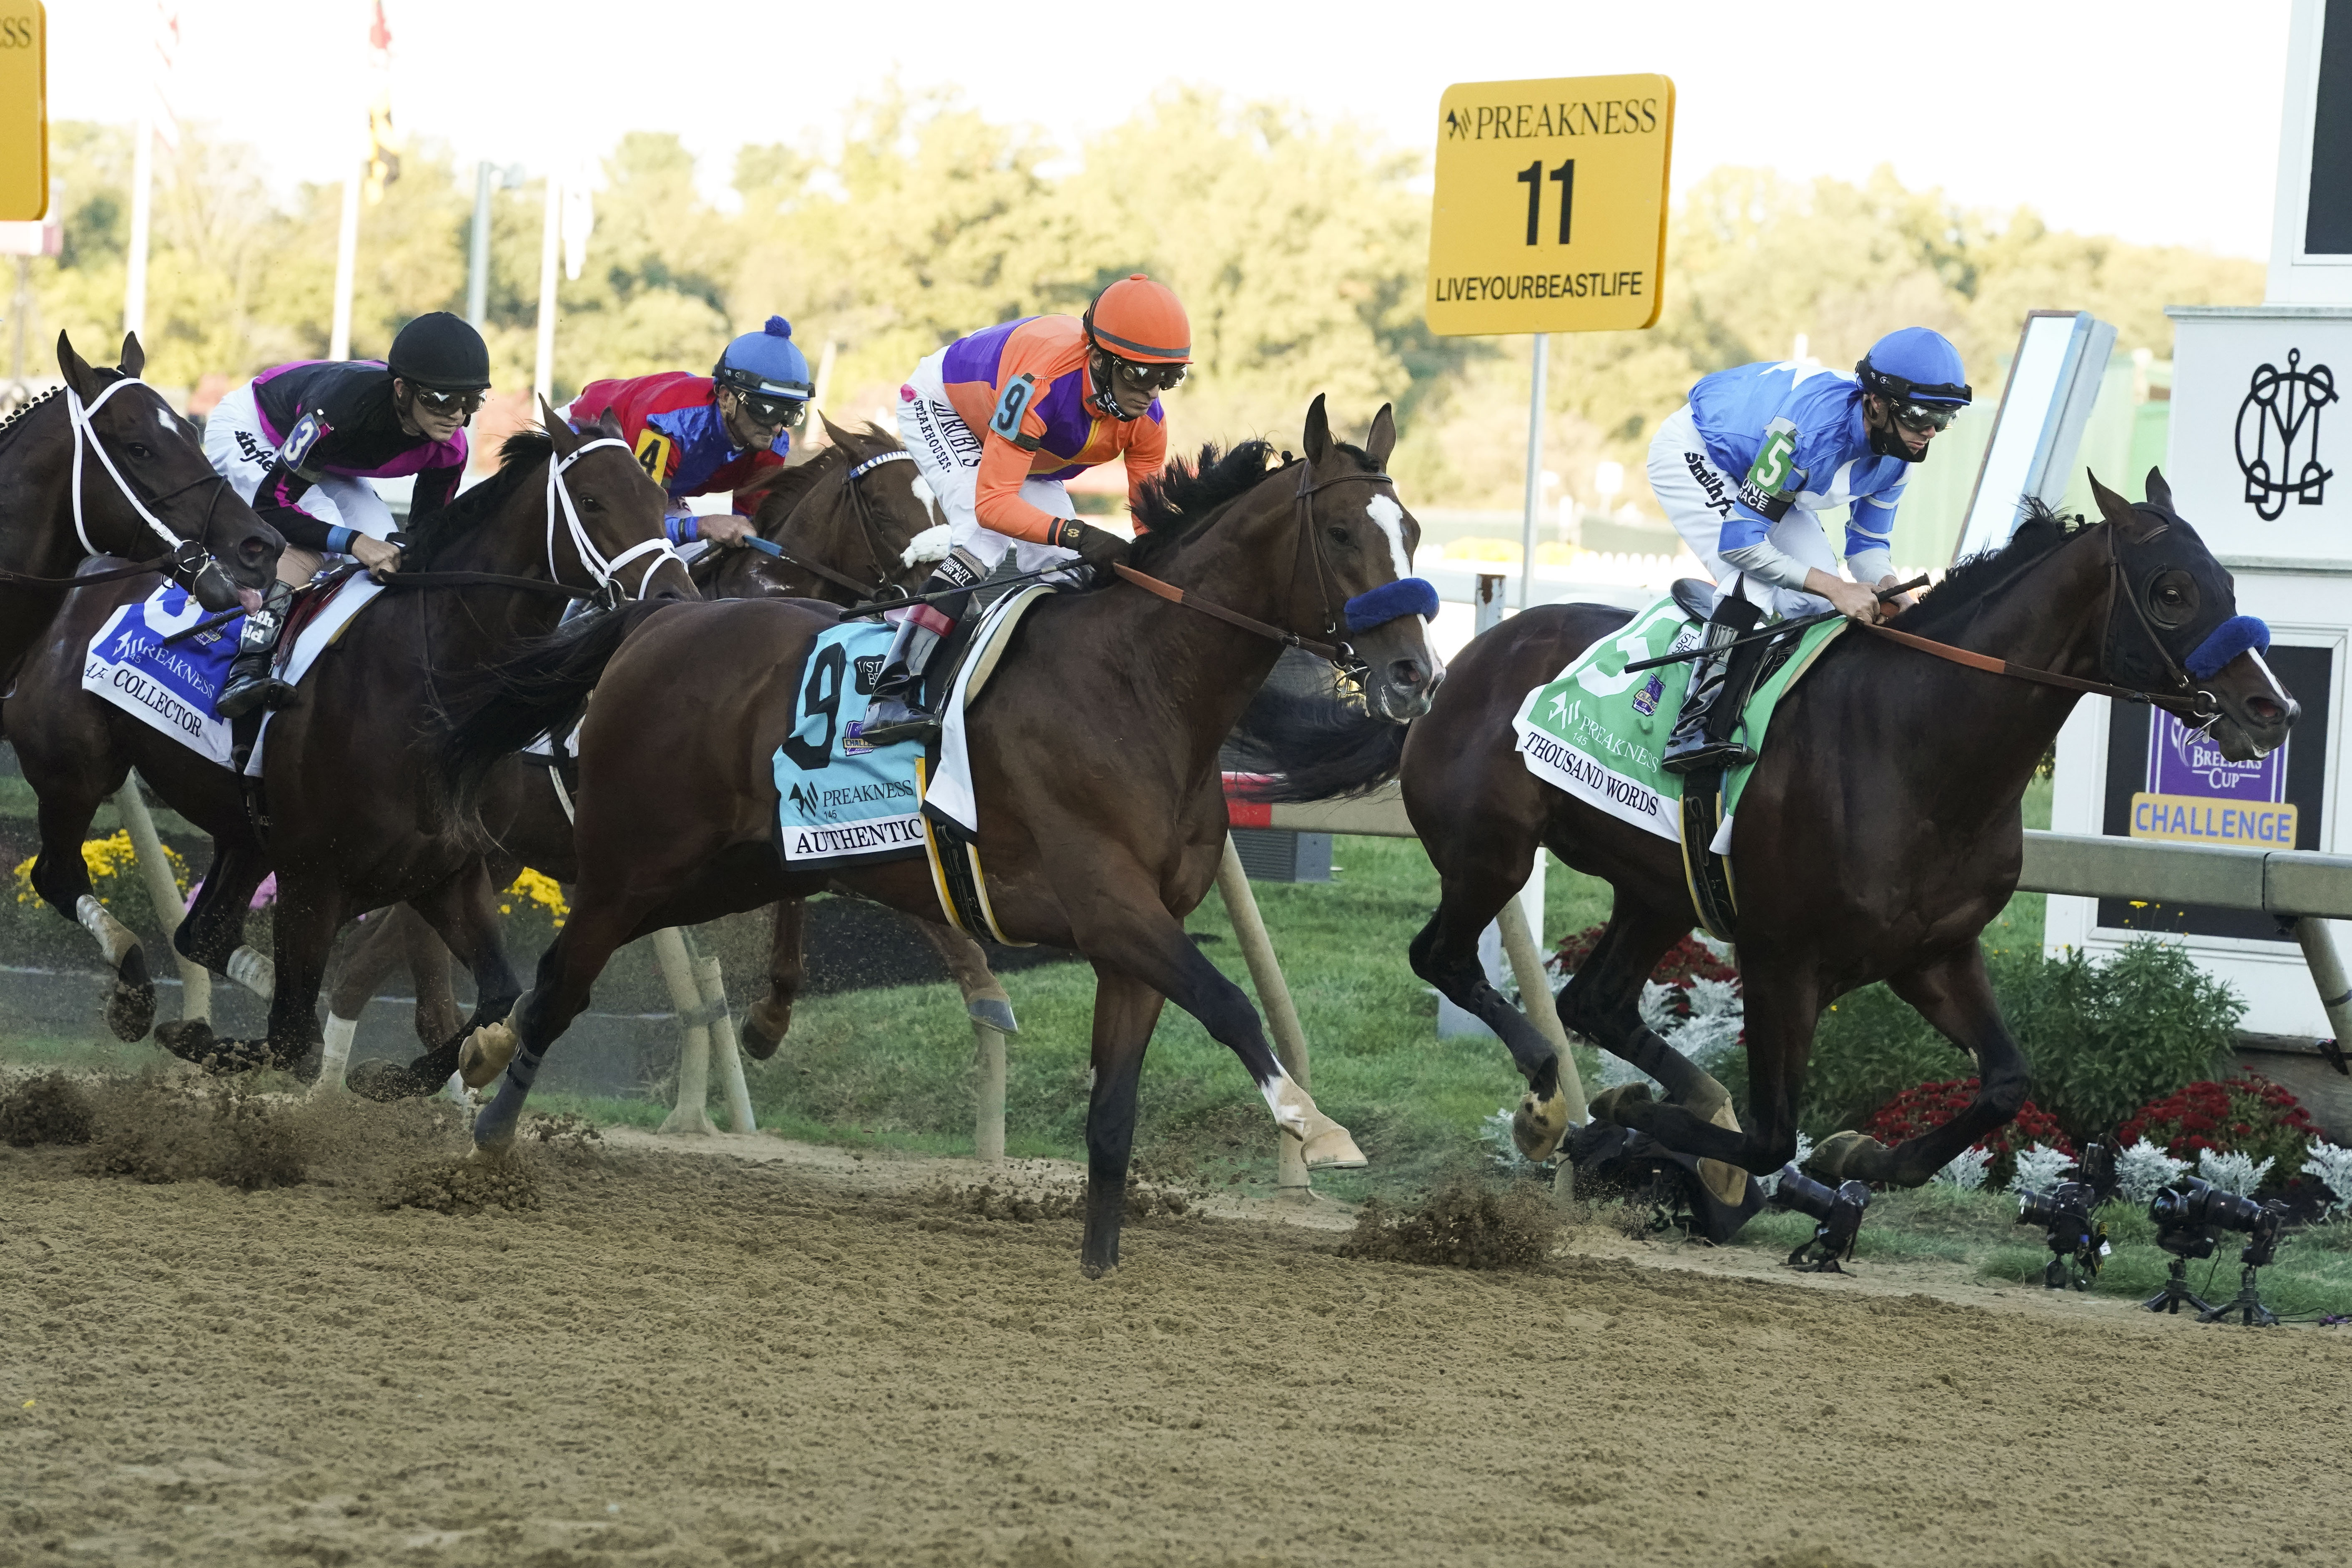 Horse Betting Sites: Factors to Consider while Choosing One